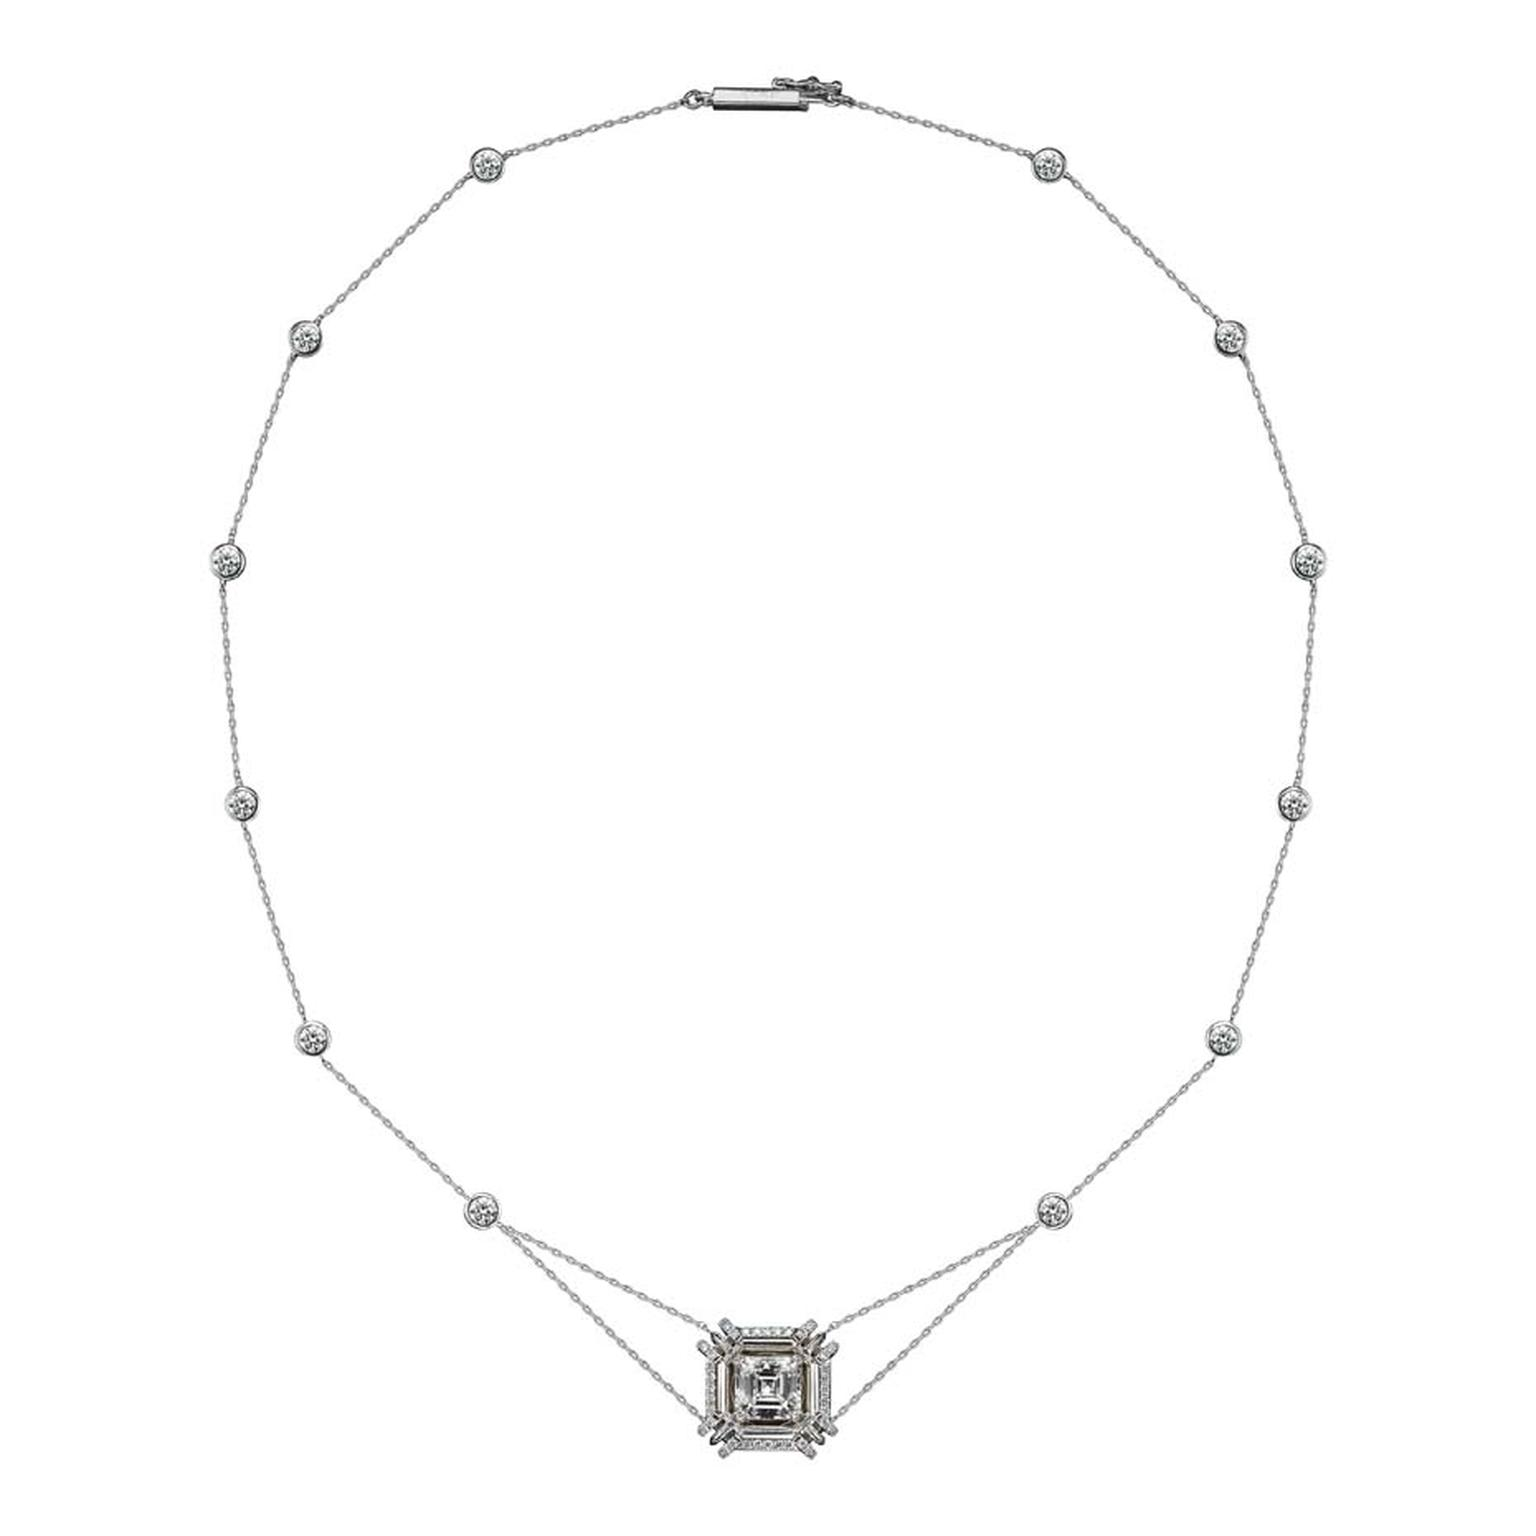 Limited edition necklace featuring 2.00ct Asscher-cut diamonds encircled with Alexandra Mor's signature